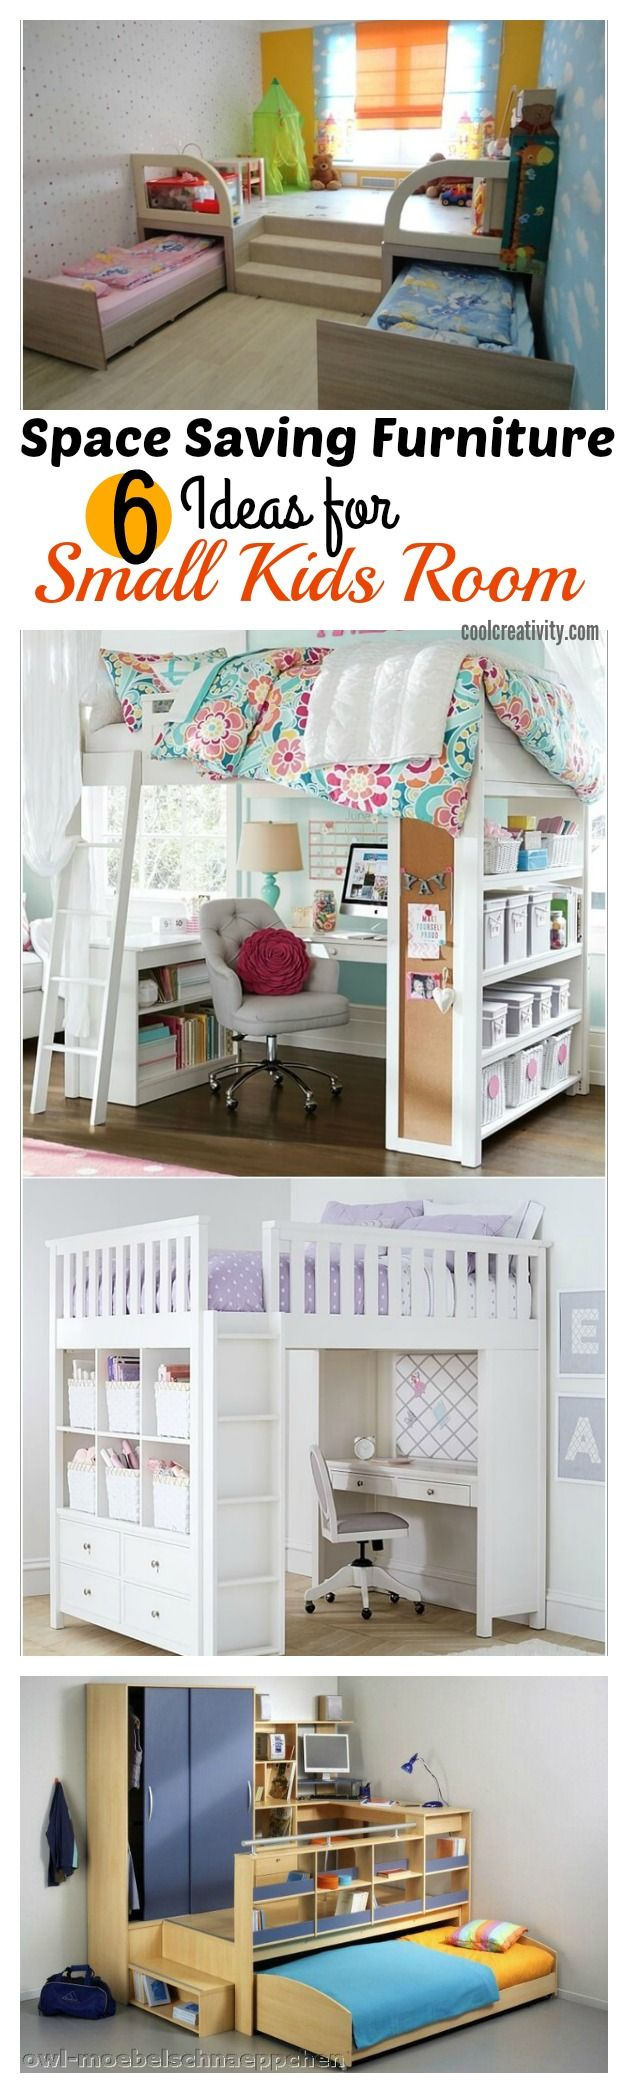 Storage For Kids Room Best 25 Kids Room Organization Ideas On Pinterest  Organize